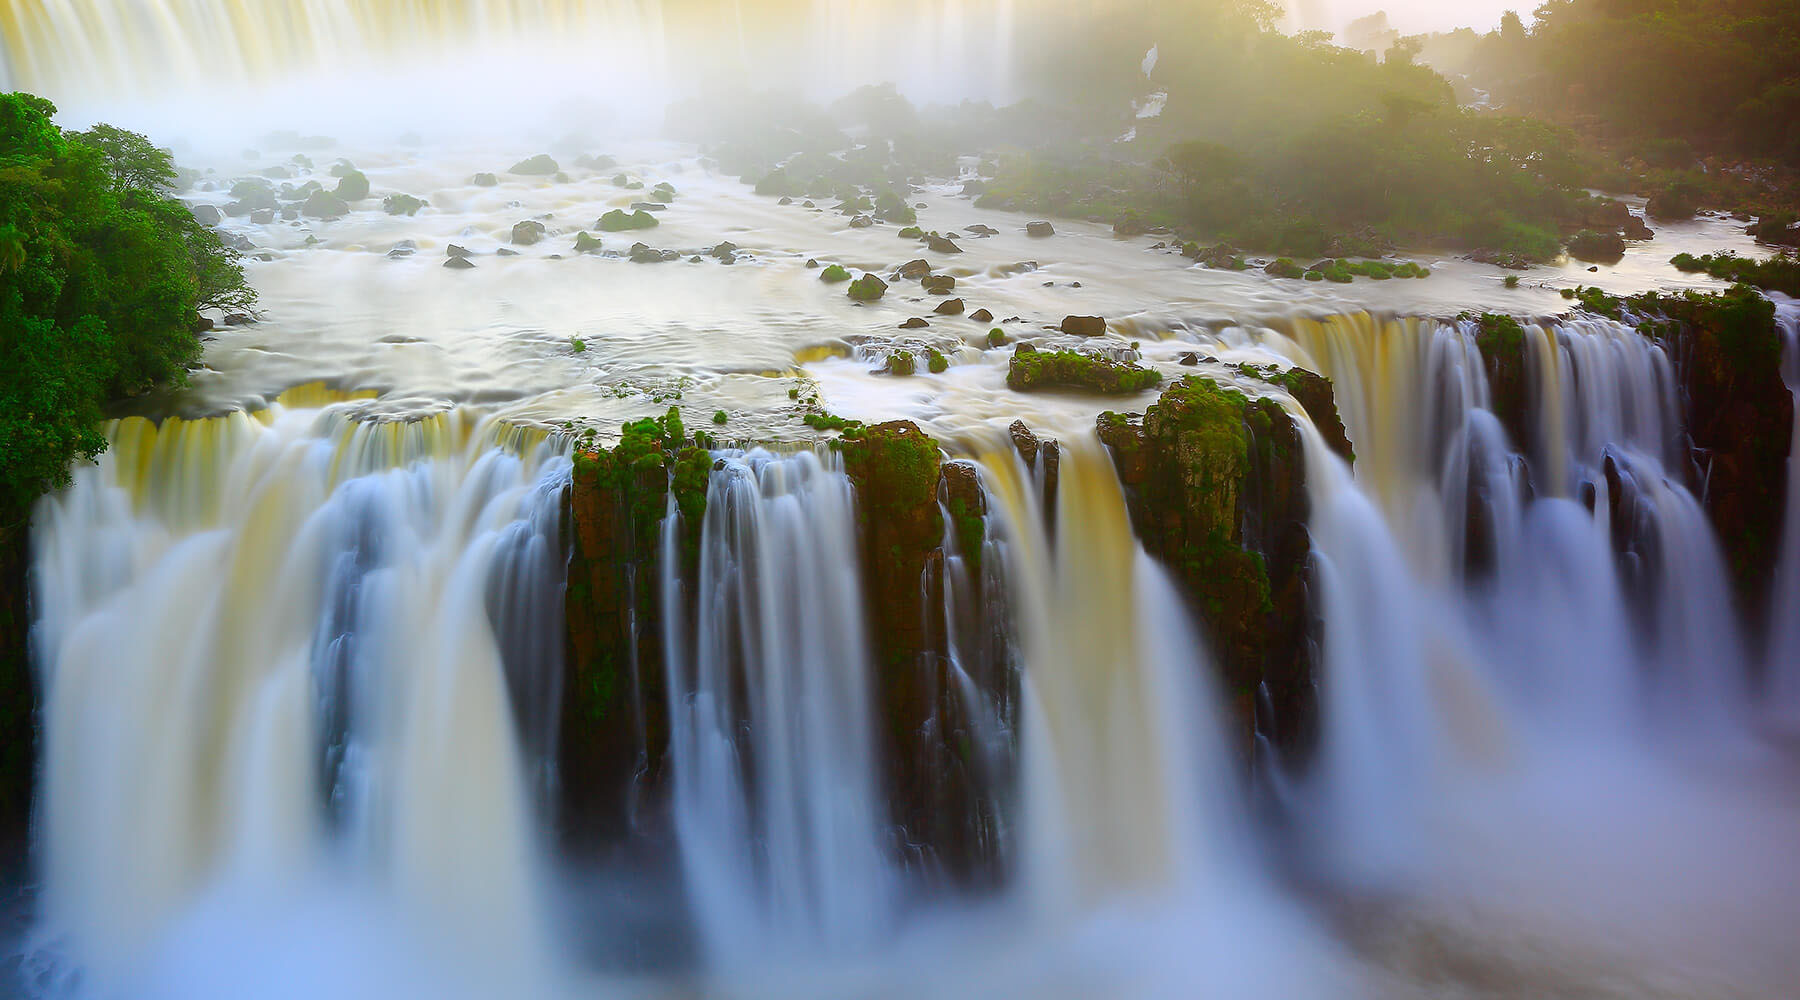 15-NIGHT NYE IN RIO VOYAGE & 4-NIGHT POST IGUAZU FALLS